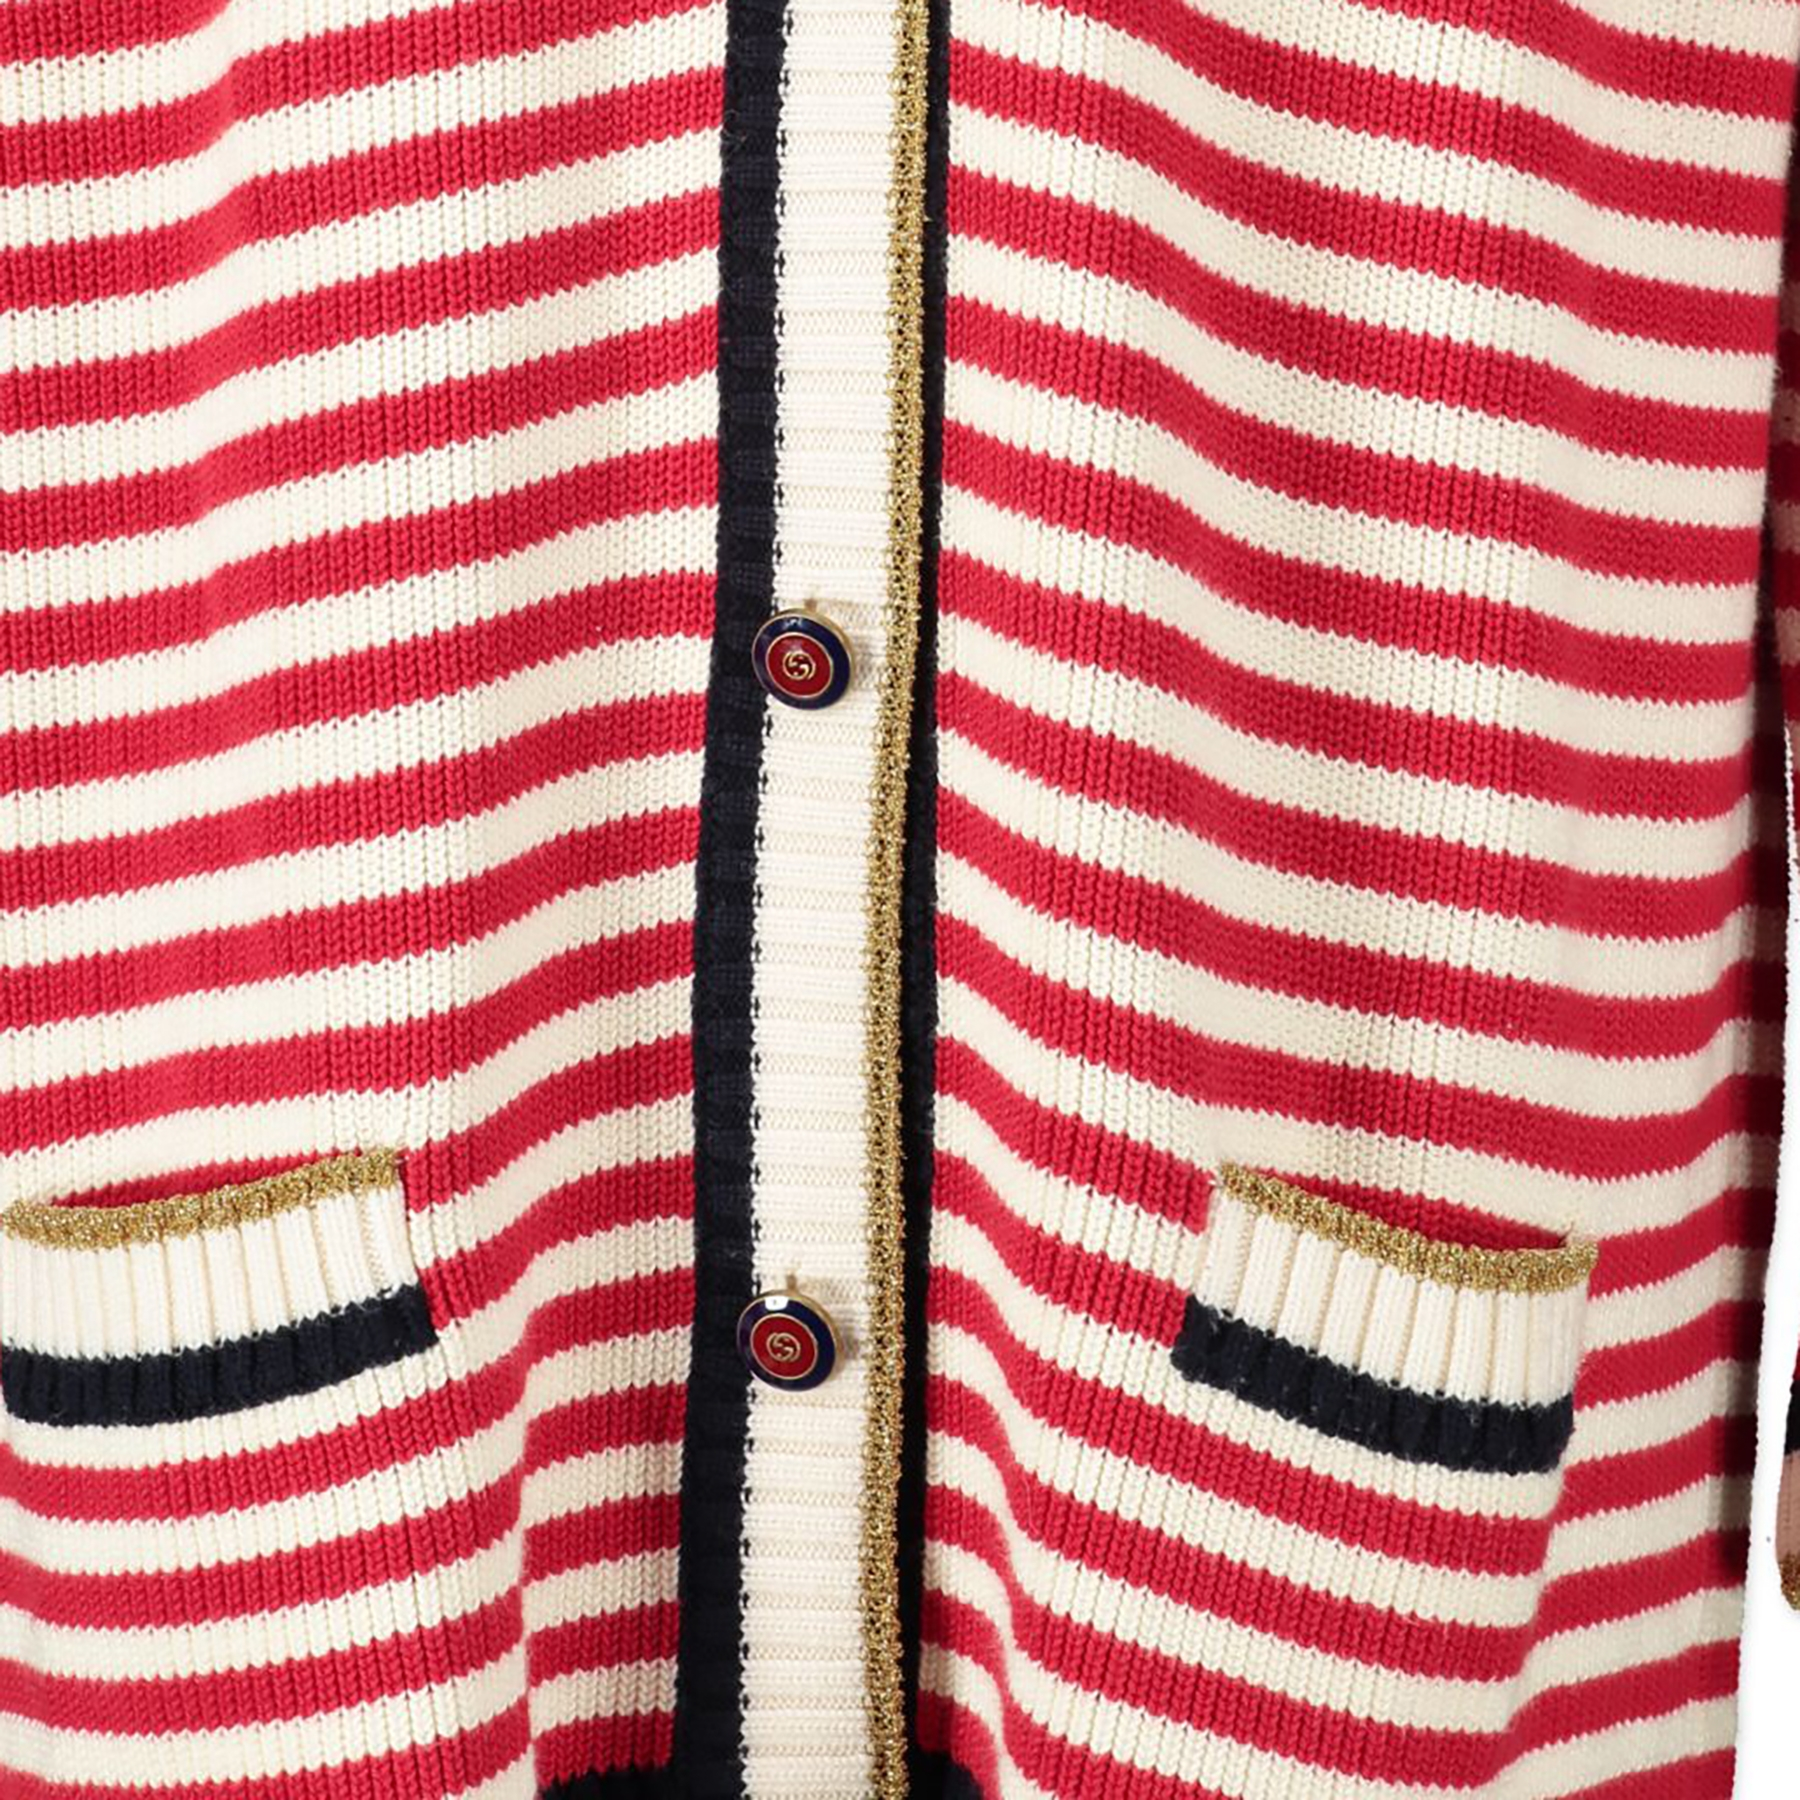 acheter en ligne seconde main Gucci Striped Wool Cardigan - Size XXL